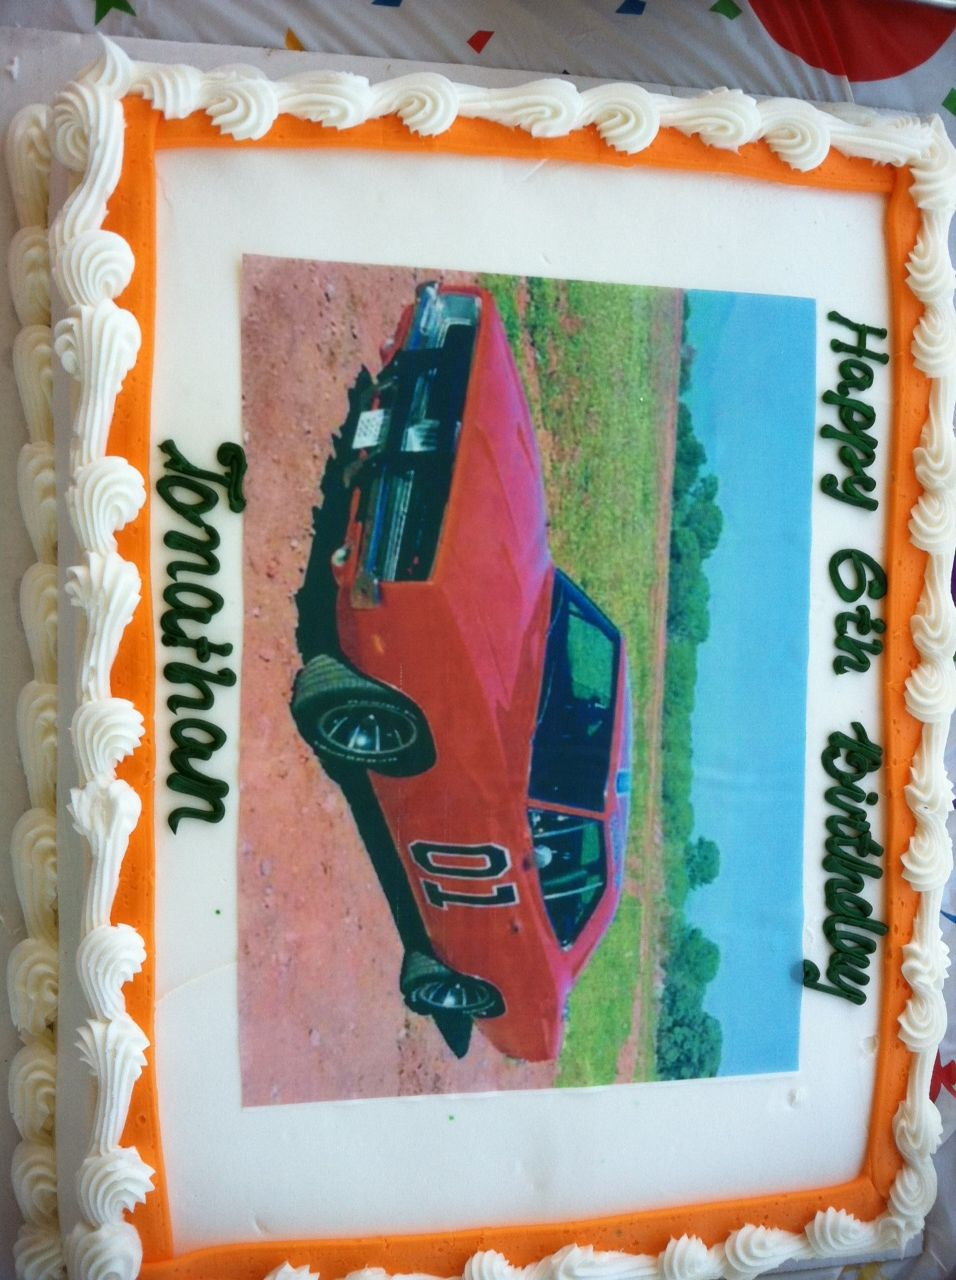 Cant Find A Dukes Of Hazzard Cake Topper Well Look No Further The General Lee Looks Awesome